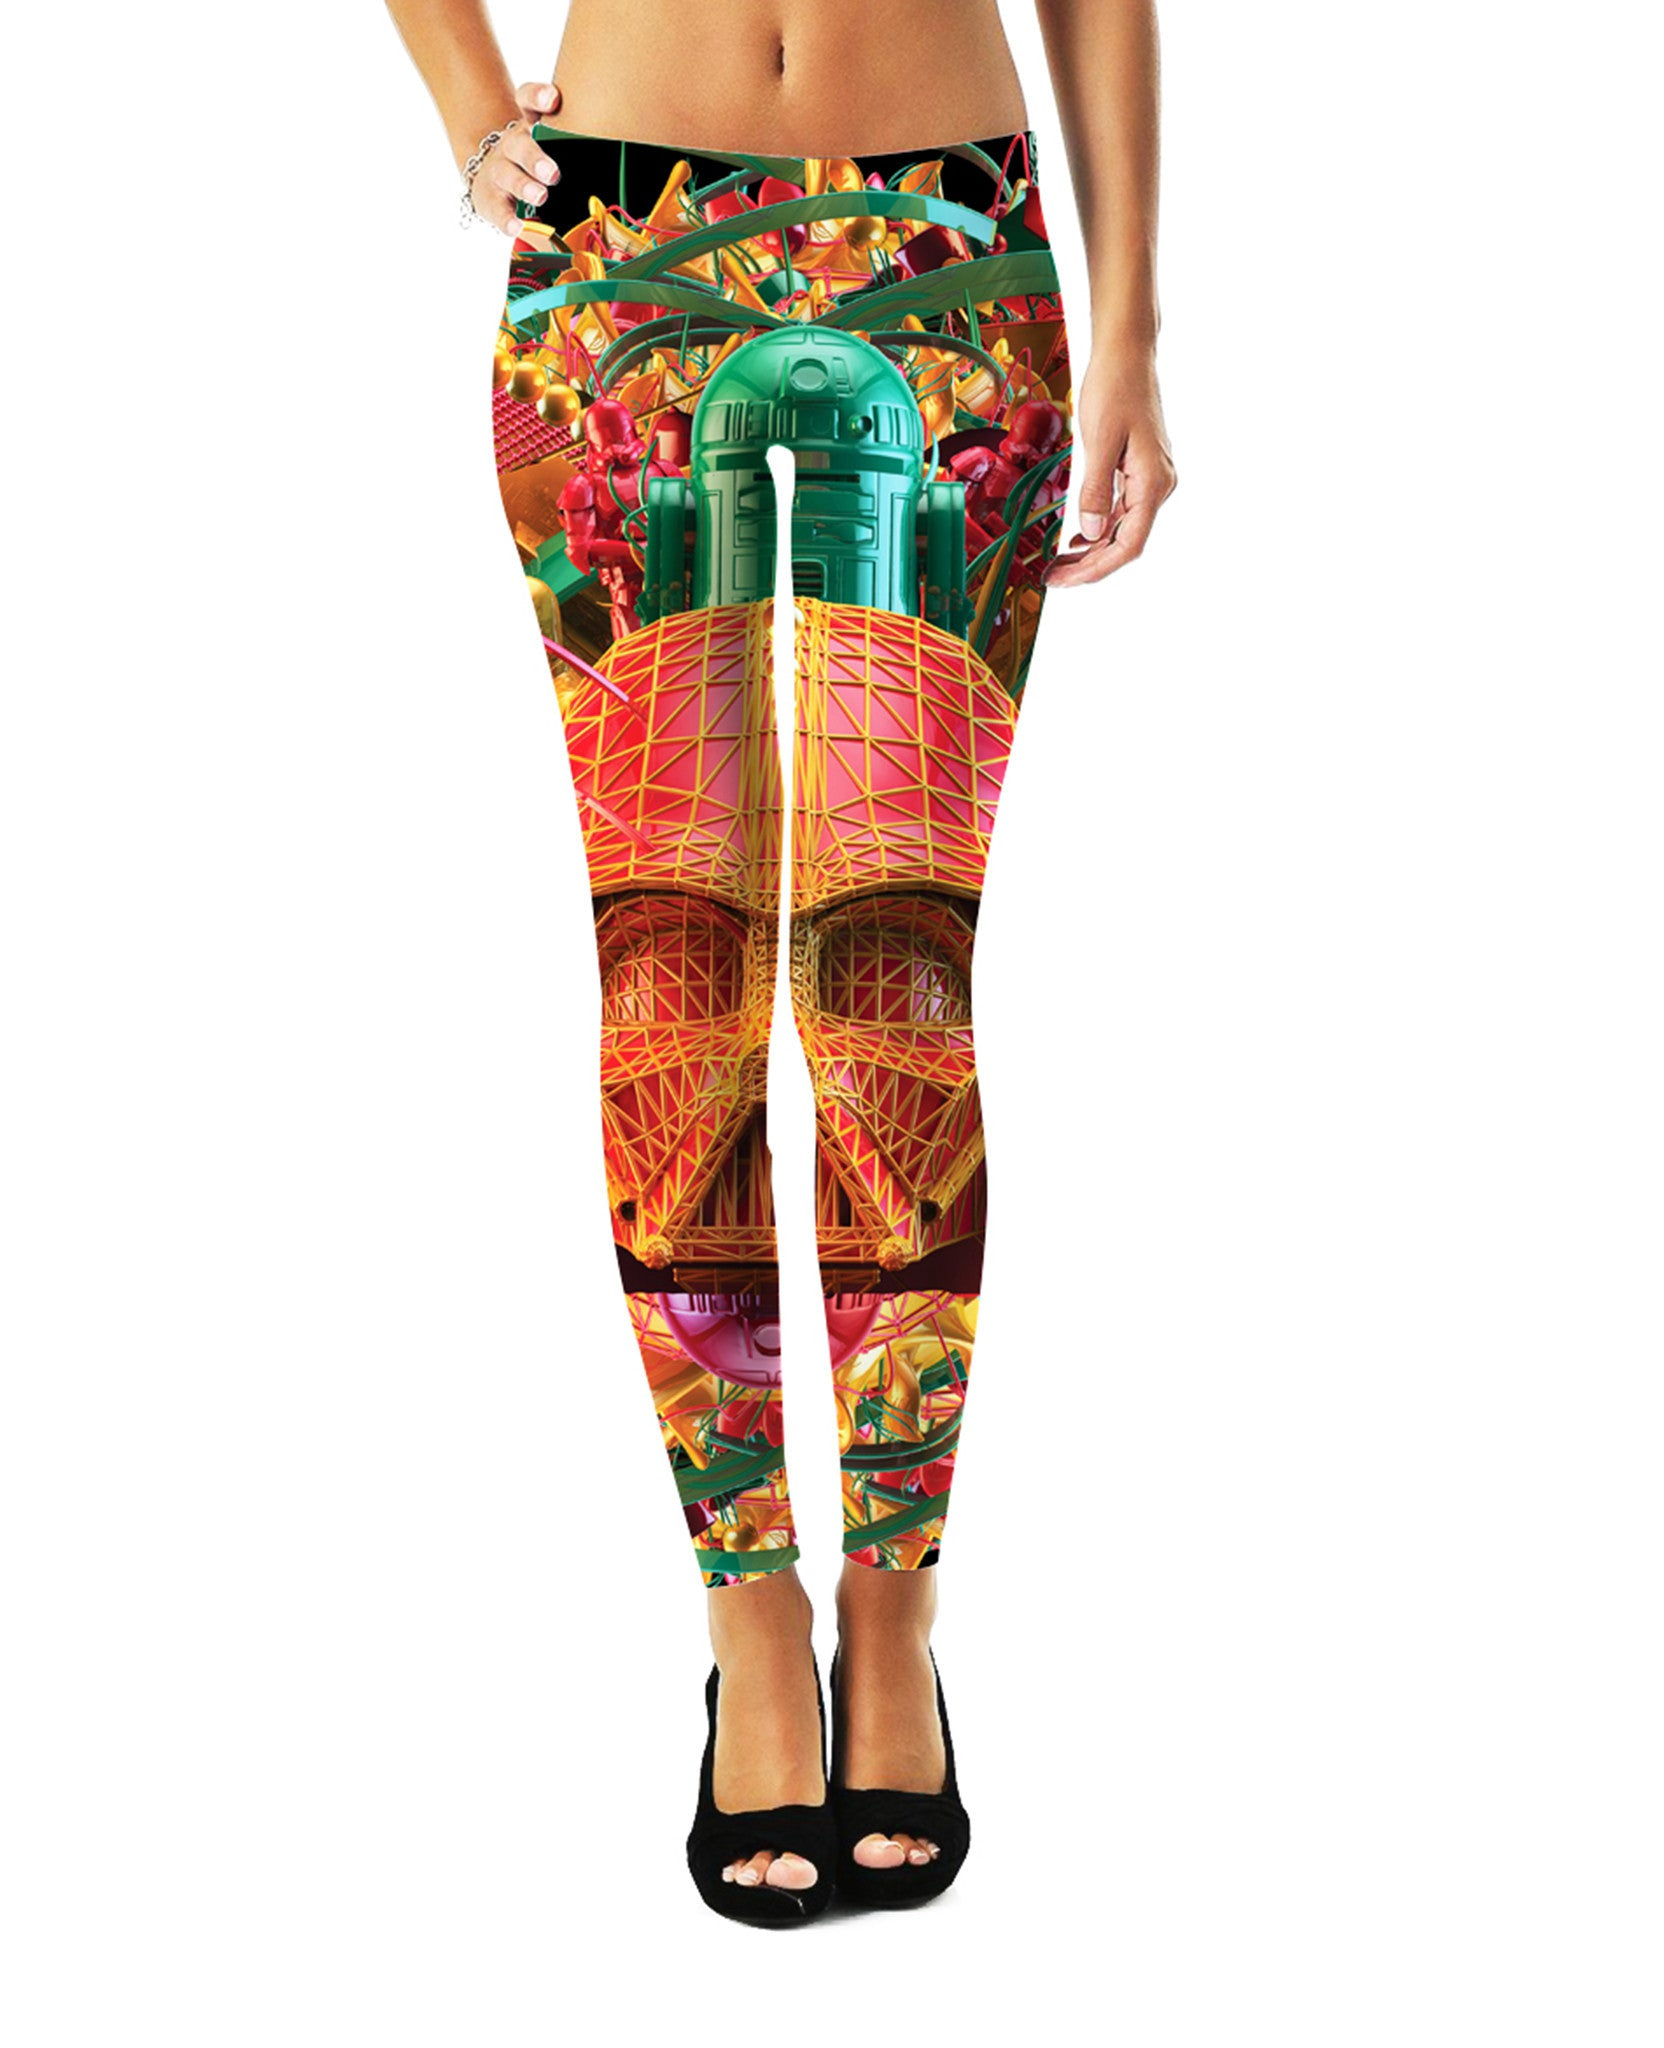 Digital Empire Leggings - TShirtsRUS.co